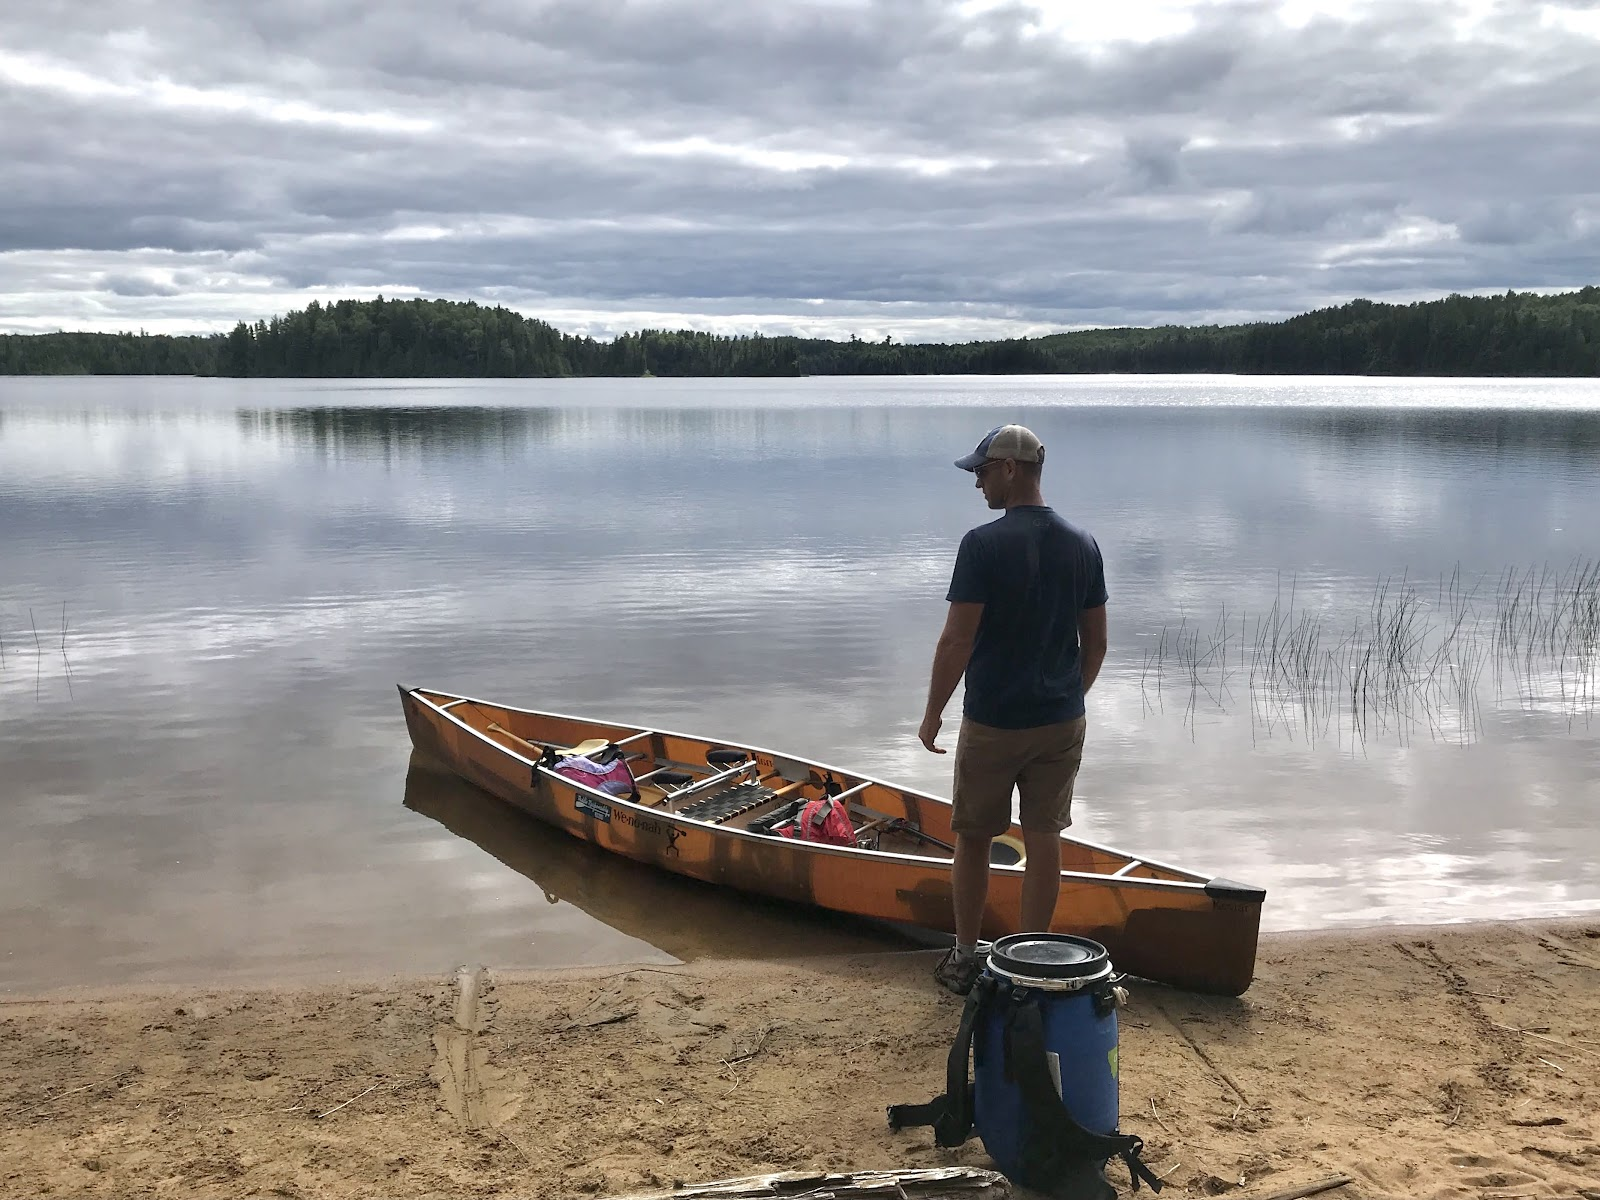 Nick standing next to the canoe in front of a lake. Blue barrel nearby.